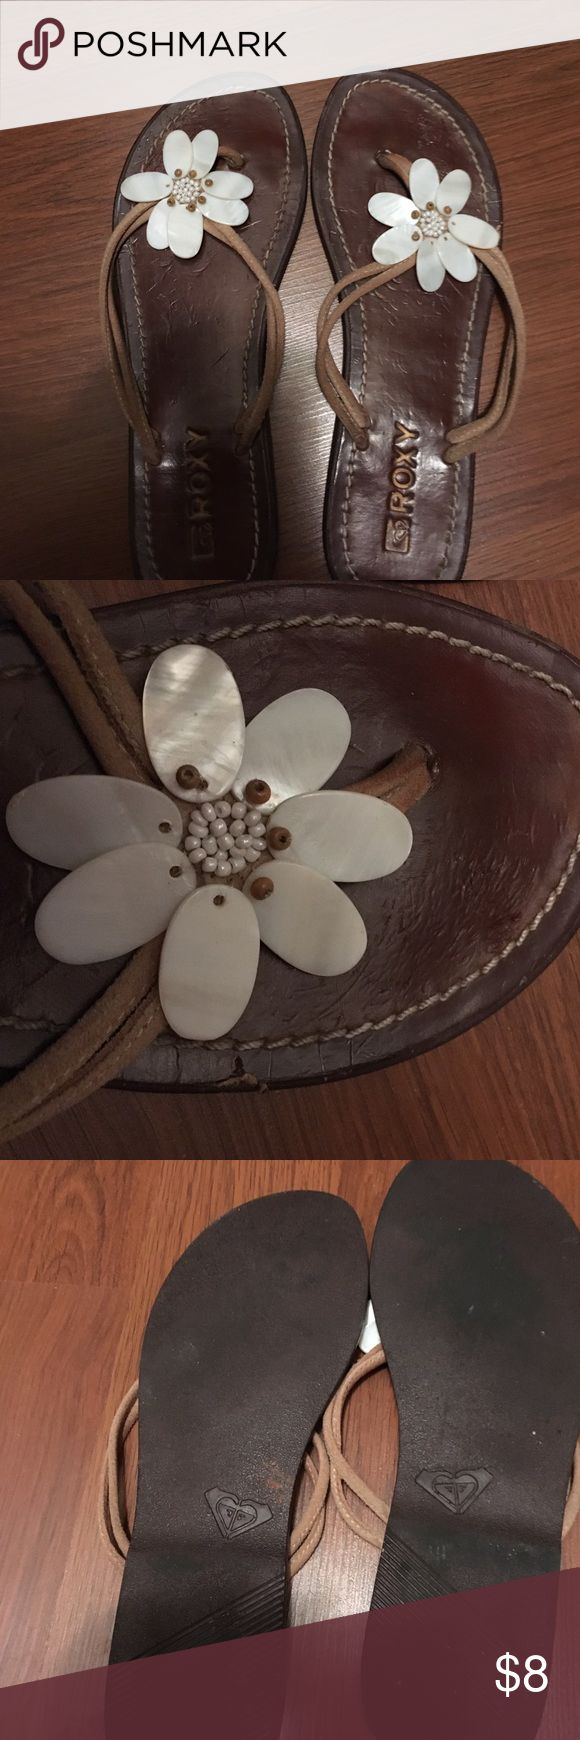 Roxy leather sandals Brown leather sandals. Suede tong with shell floral design. Fair condition and Worn but still has A few more miles to go Roxy Shoes Sandals